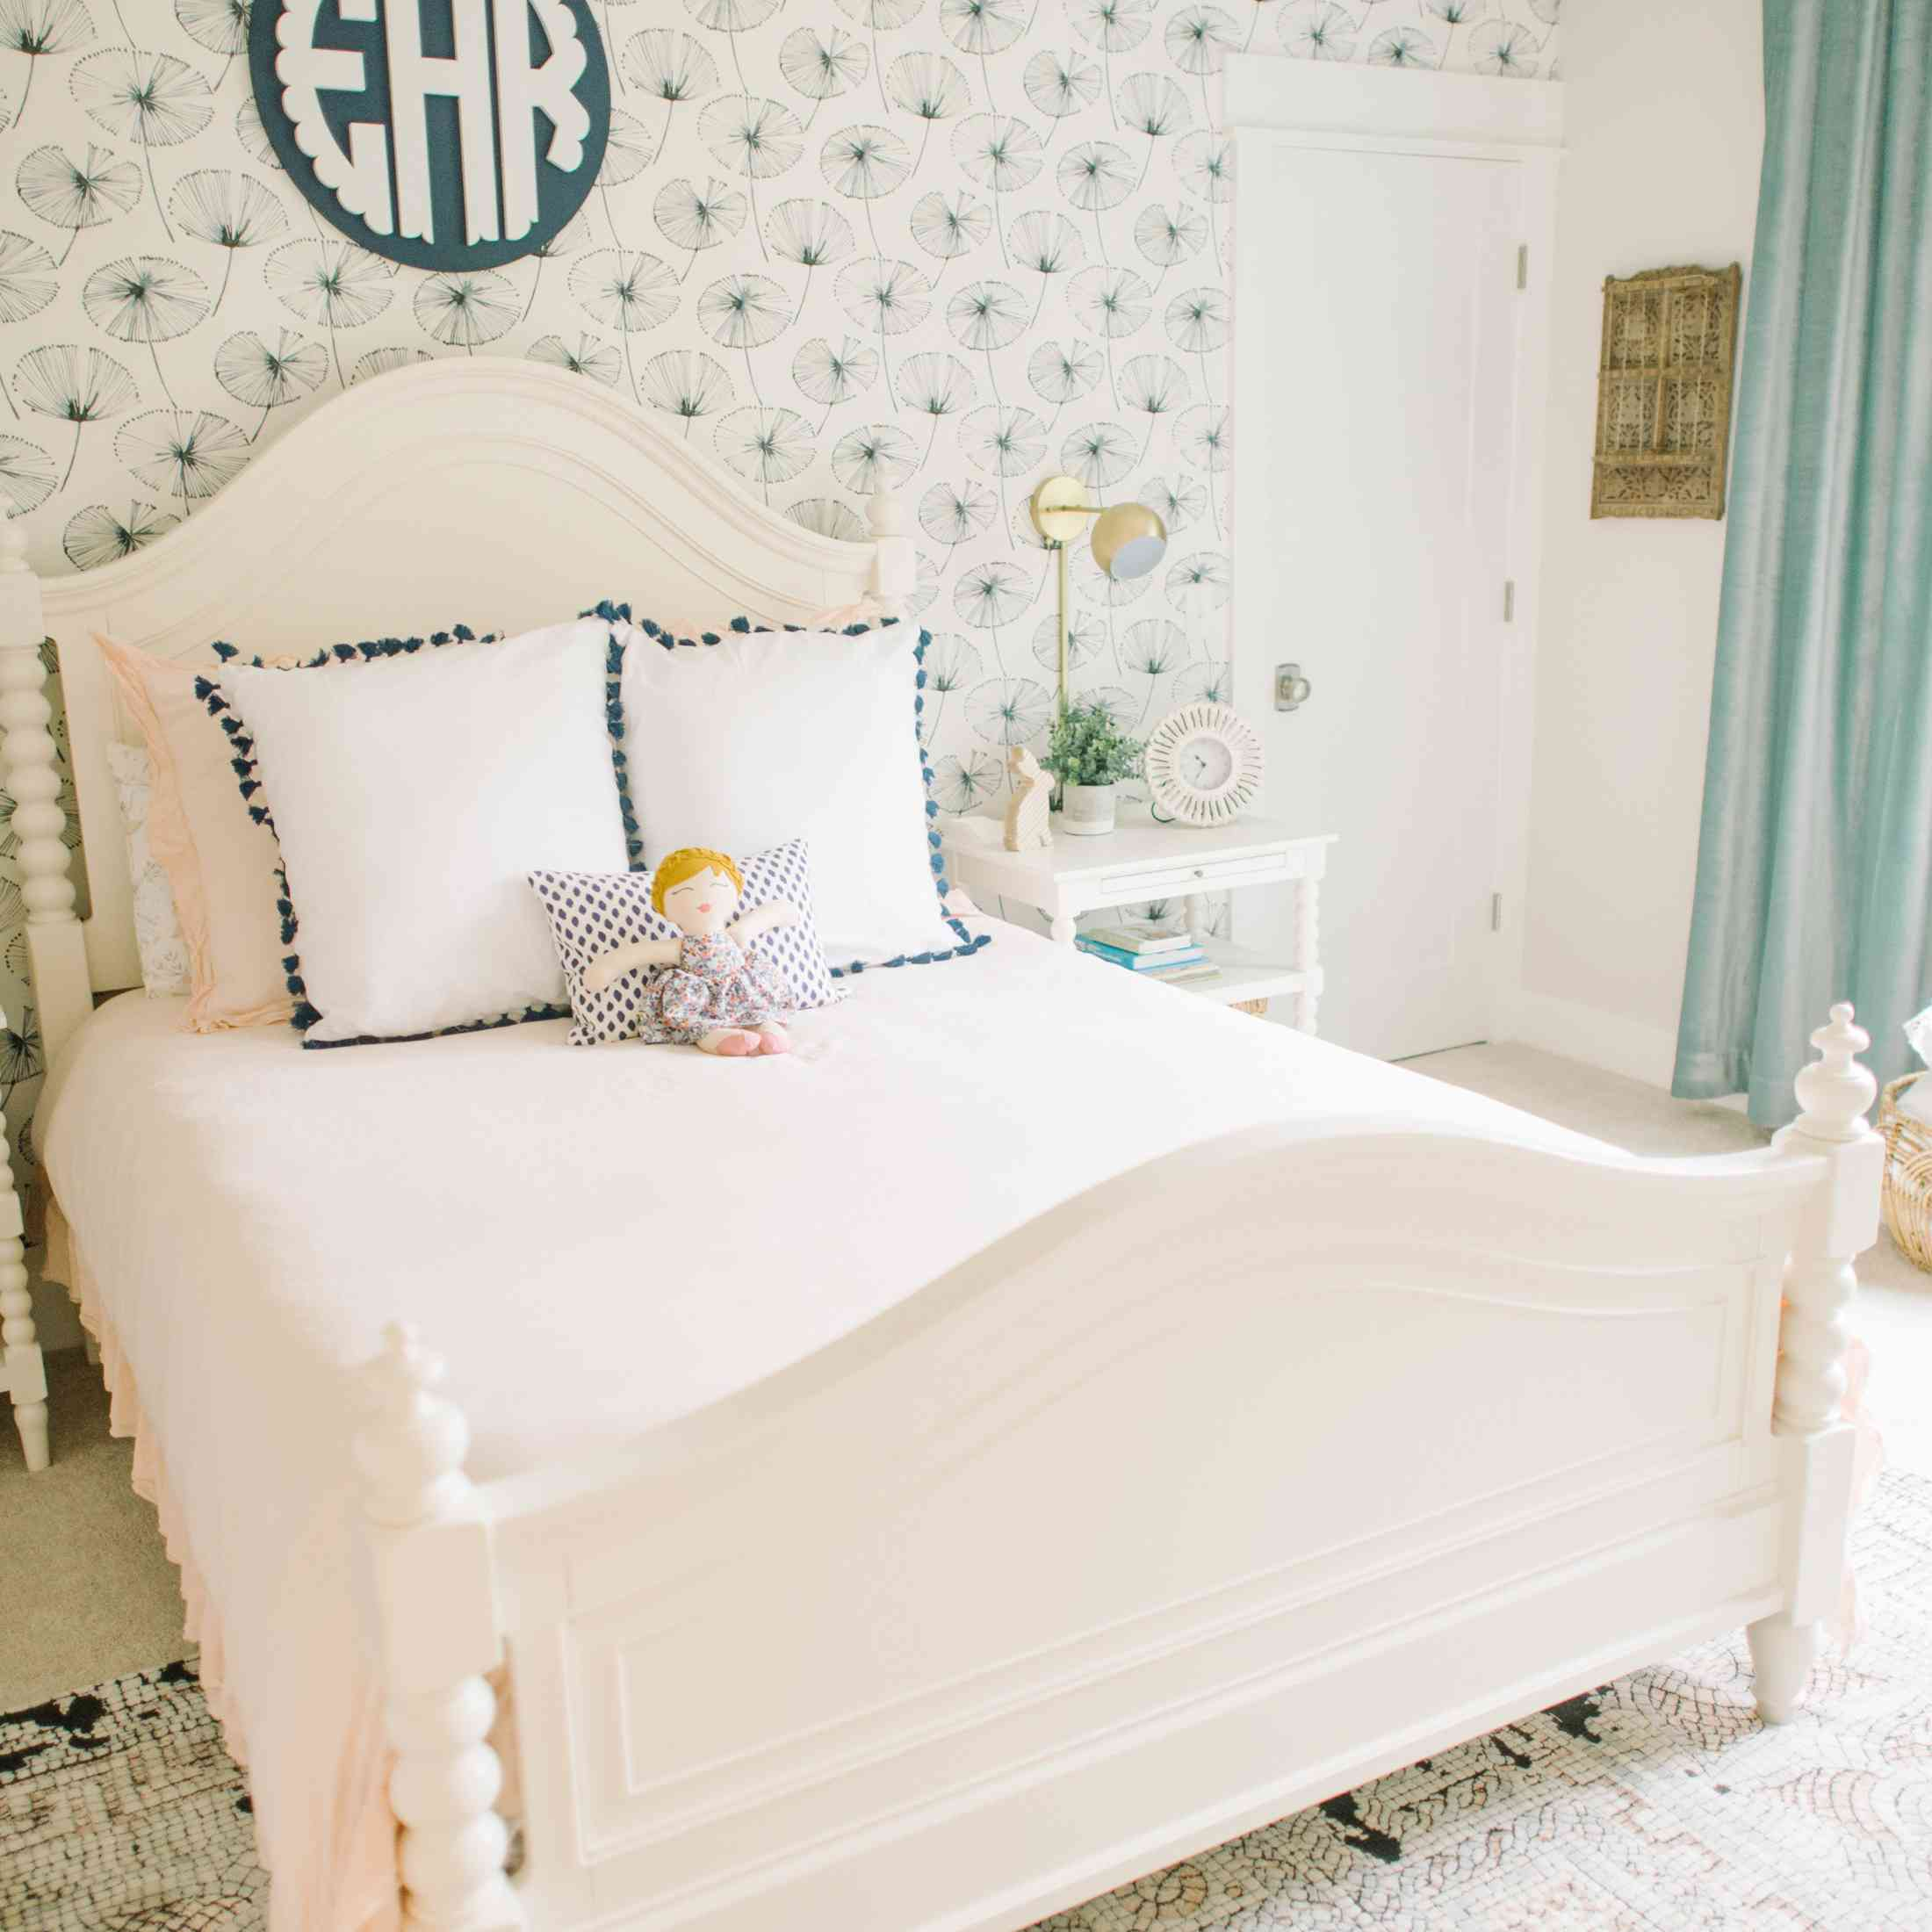 Preppy pink and blue bedroom with monogram wall decor